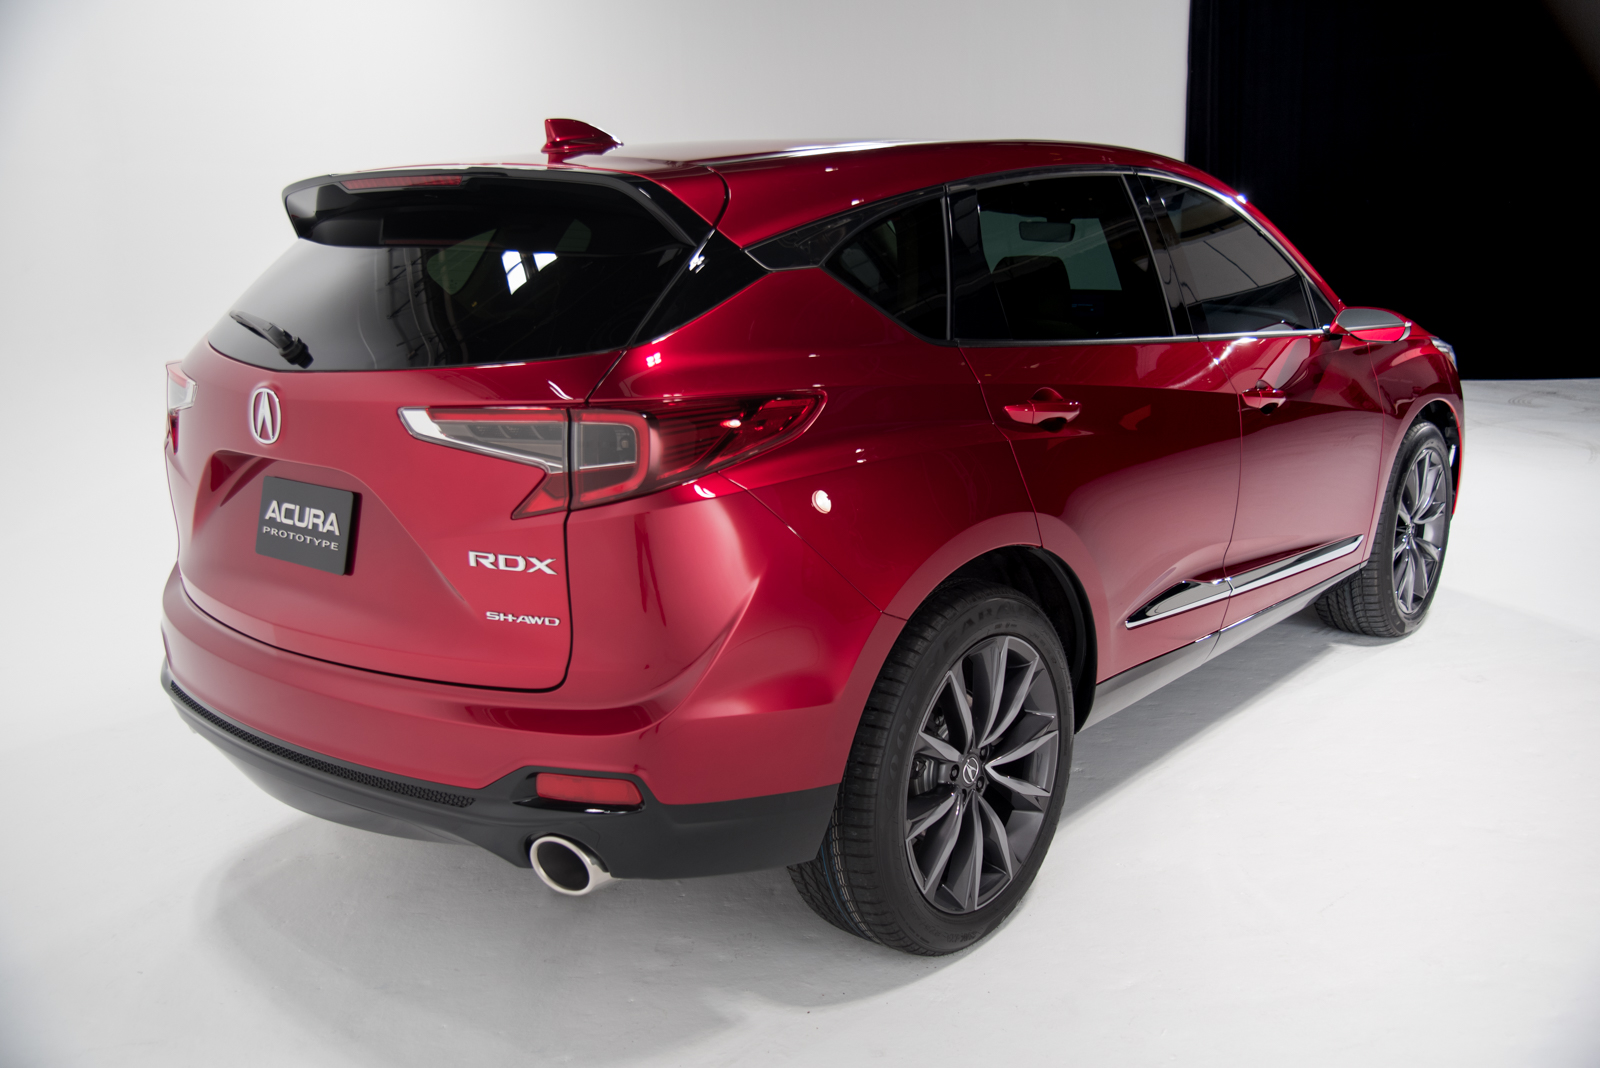 luxury get in black view crossover content acura year model its front enhancements numerous to zdx side final